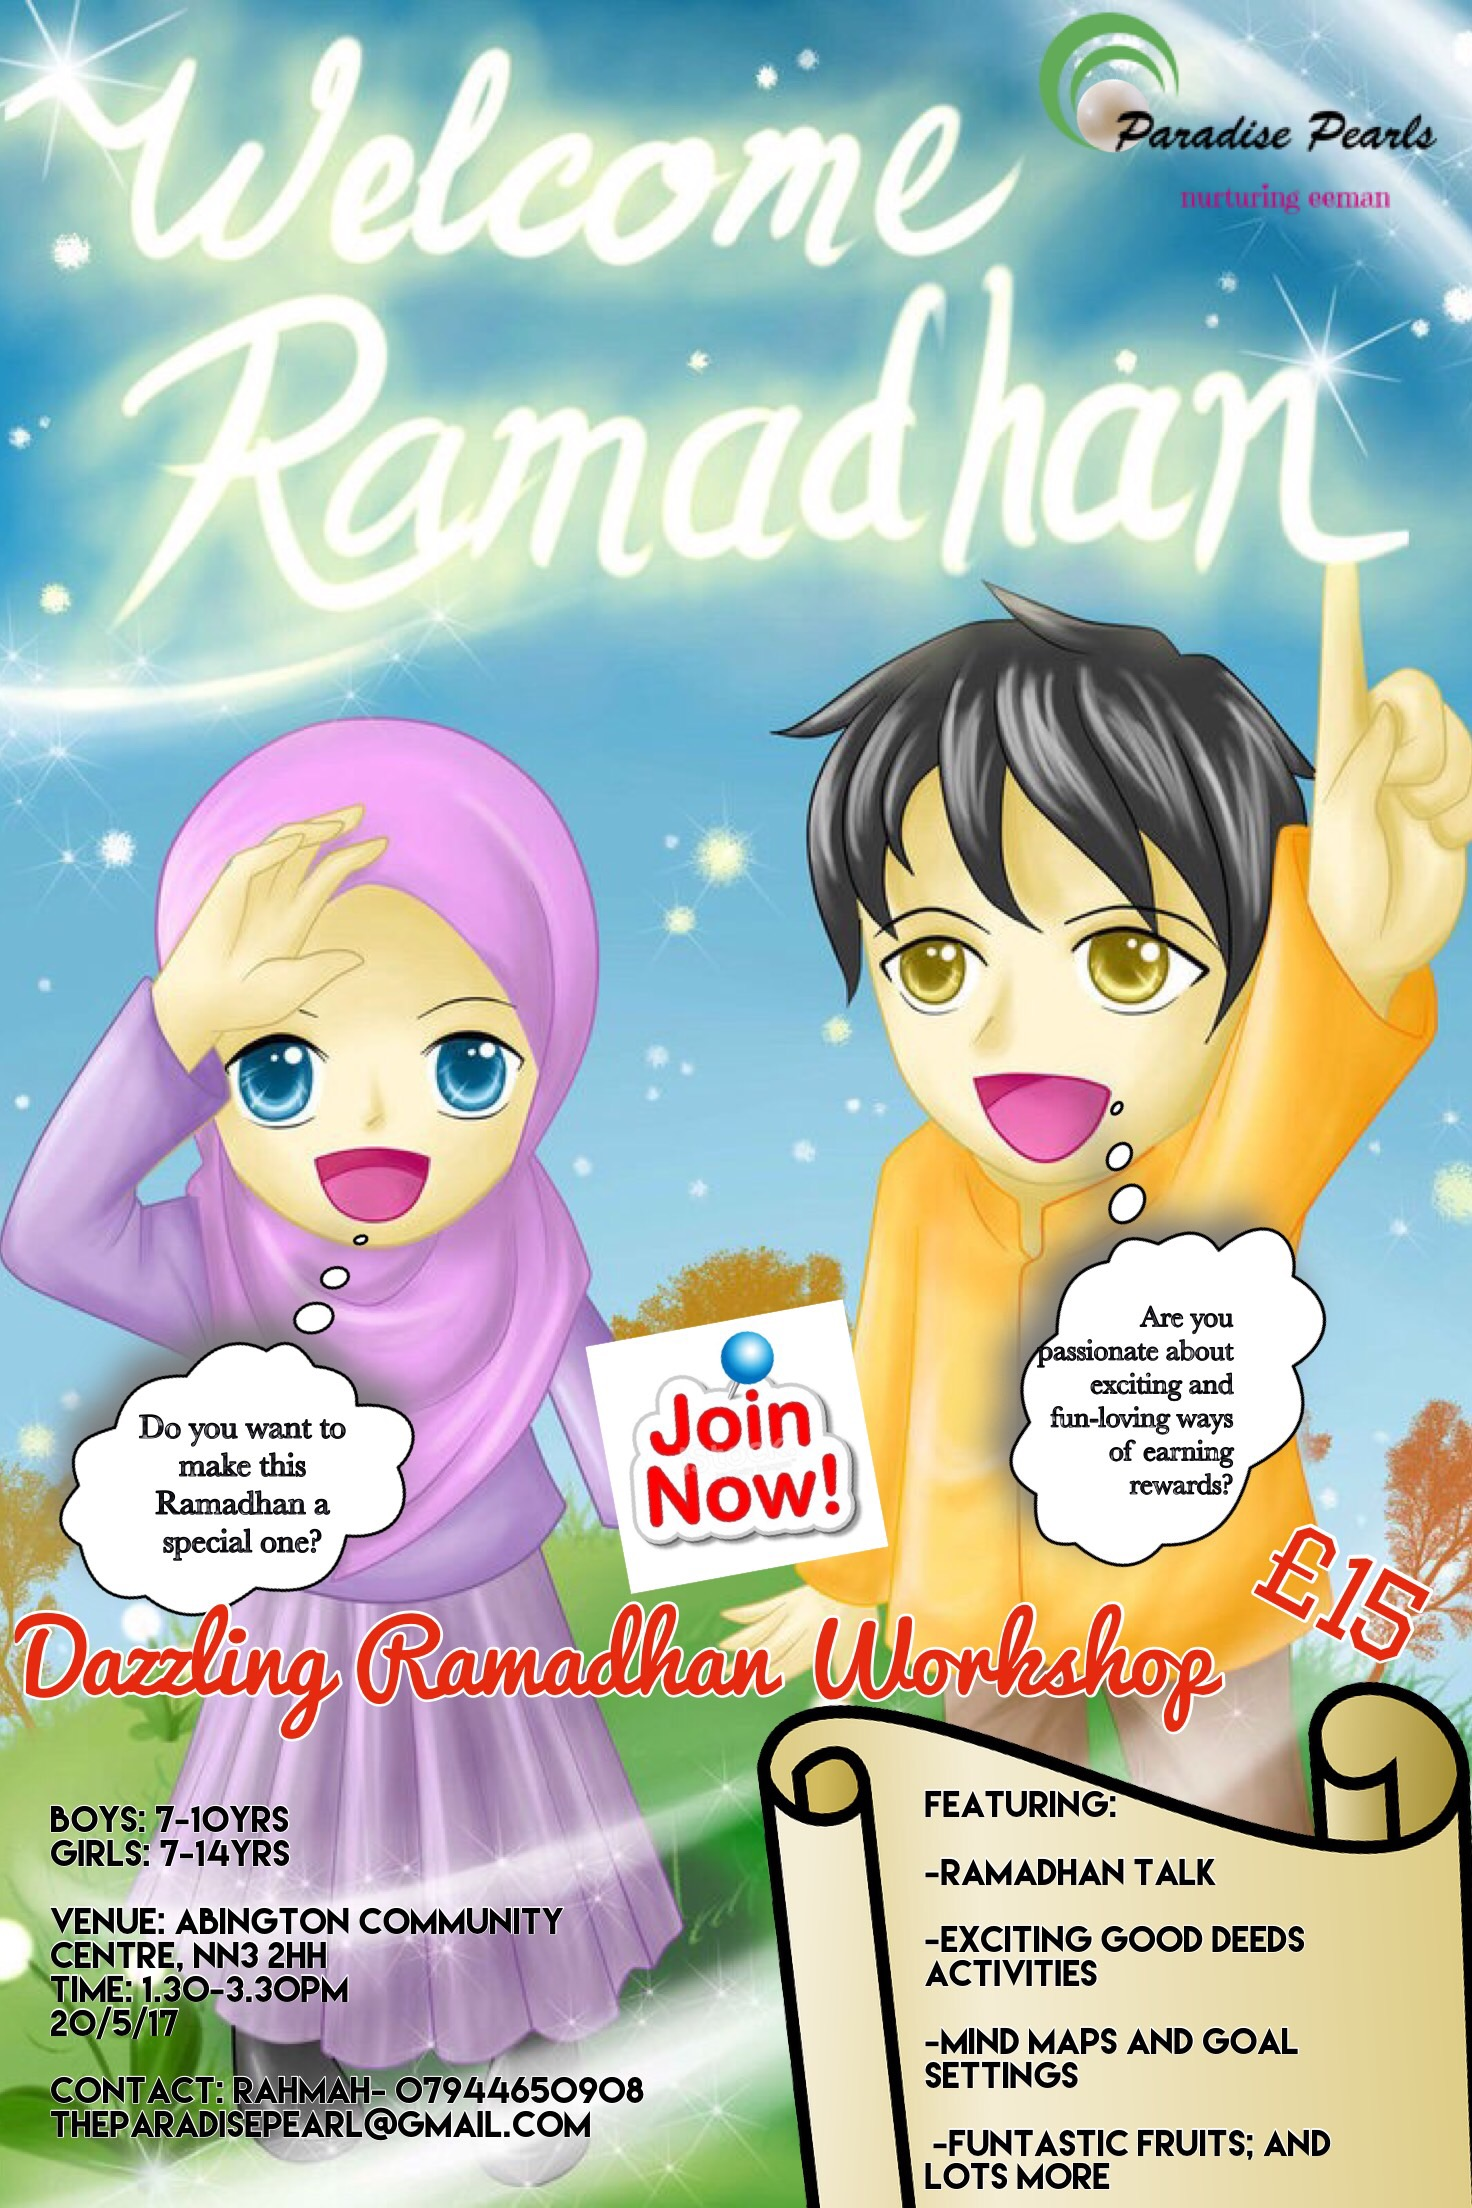 A fun-filled Ramadhan workshop for kids